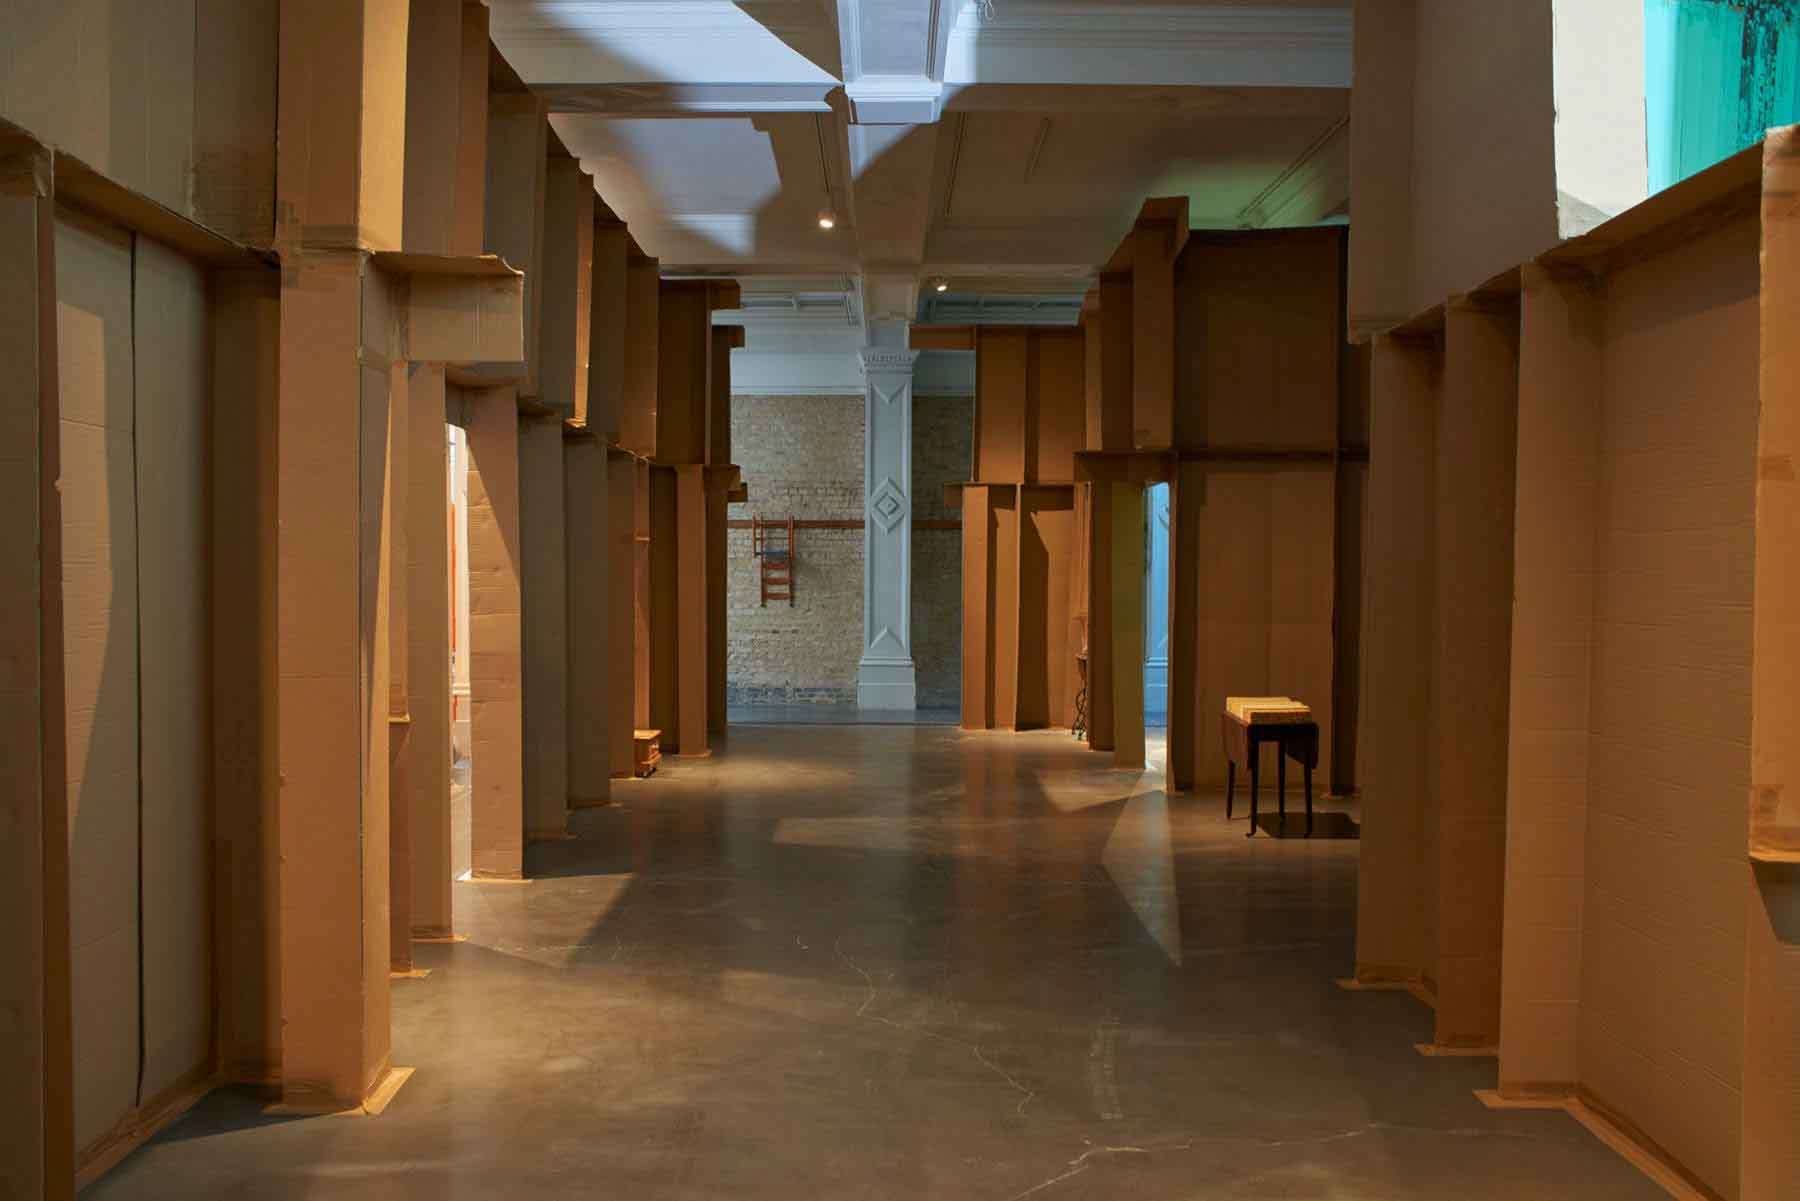 An installation by Carlos Bunga of walls and features made of cardboard at the Whitechapel Gallery, London, UK.